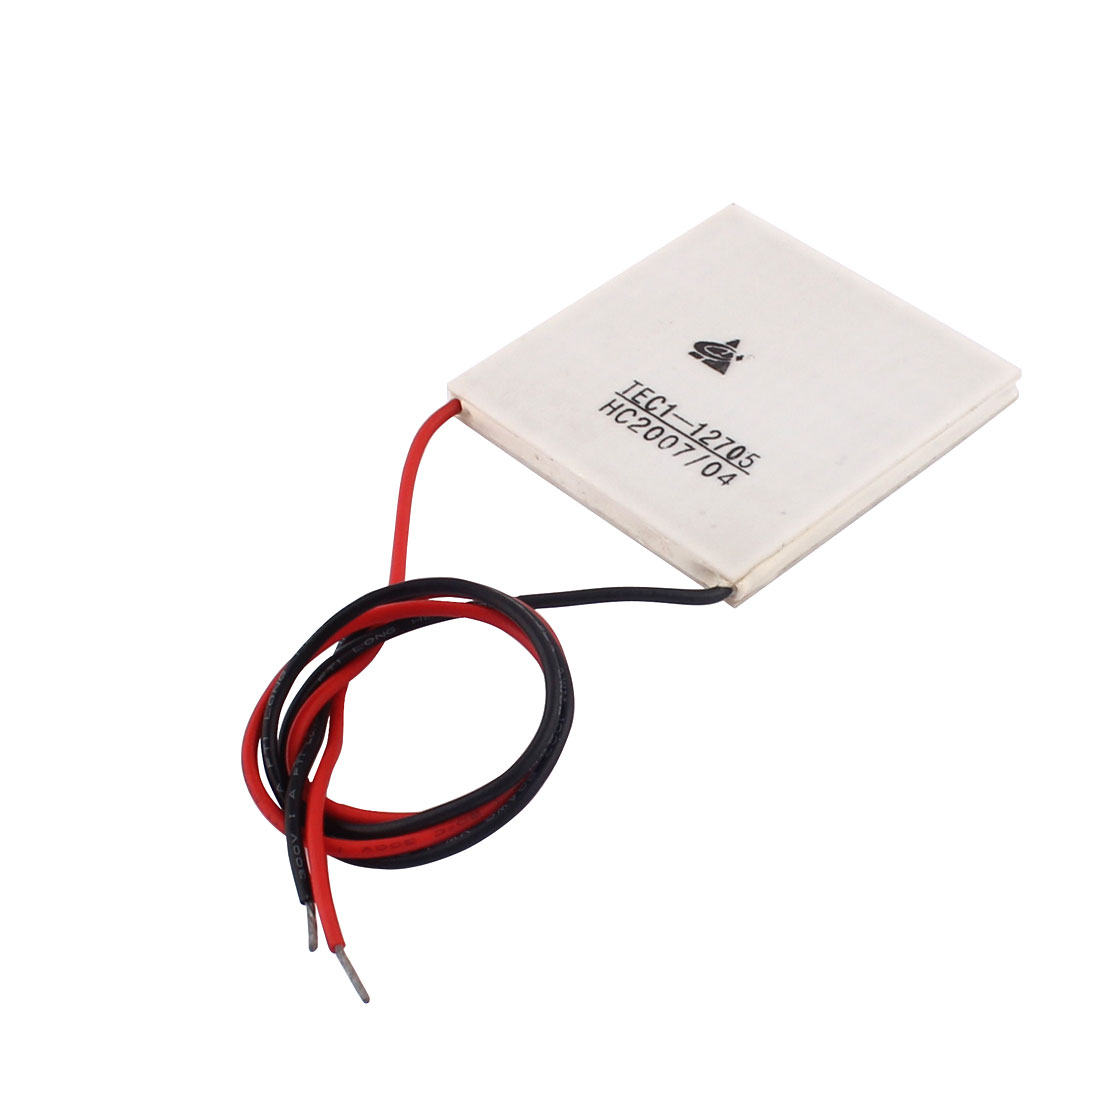 TEC1-12705 4A 12V 48W 50x50x5mm Thermoelectric Cooler Peltier Plate Module